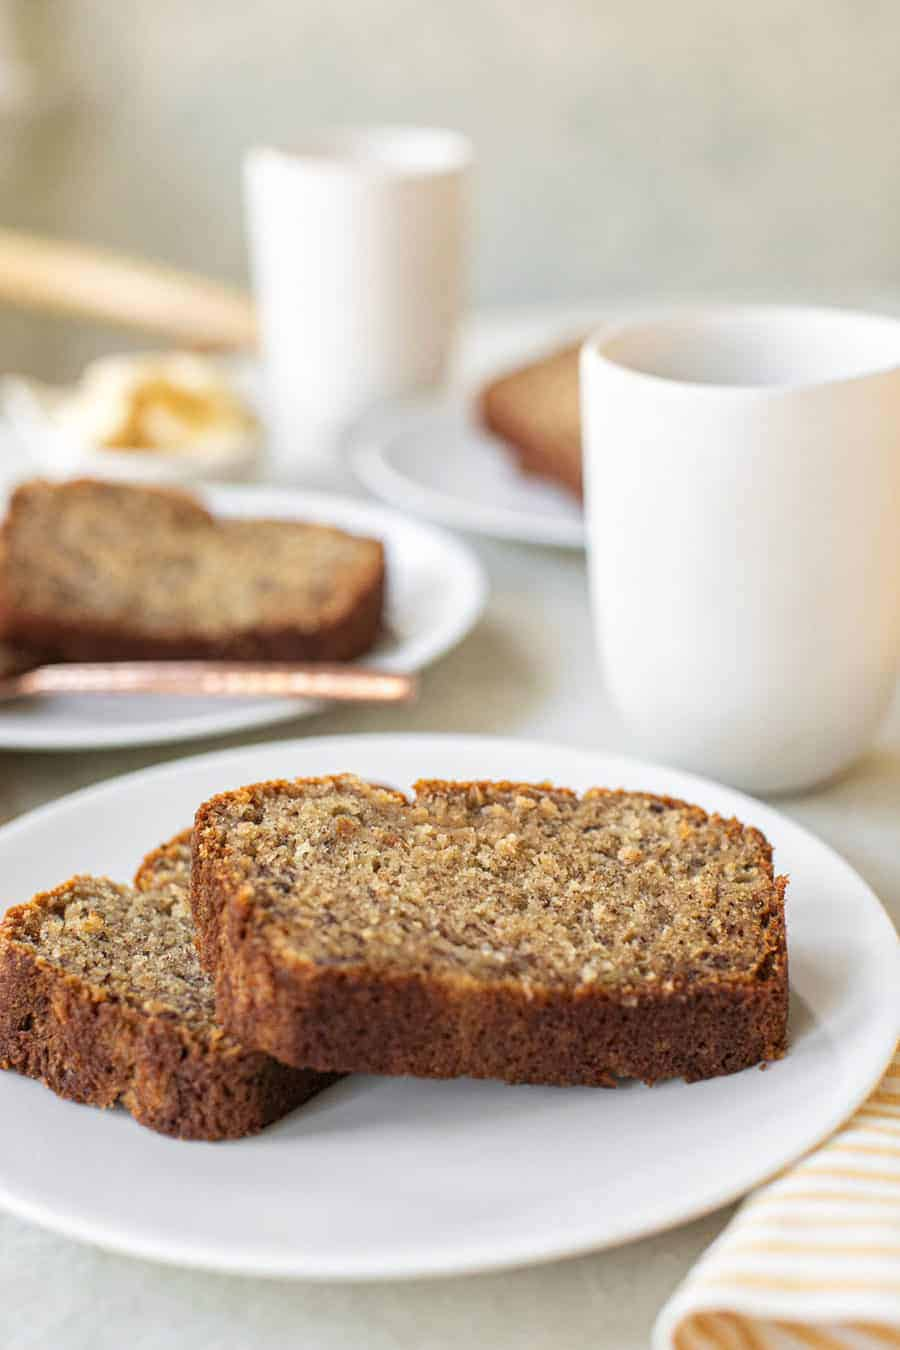 Moist and delicious banana bread on a white plate